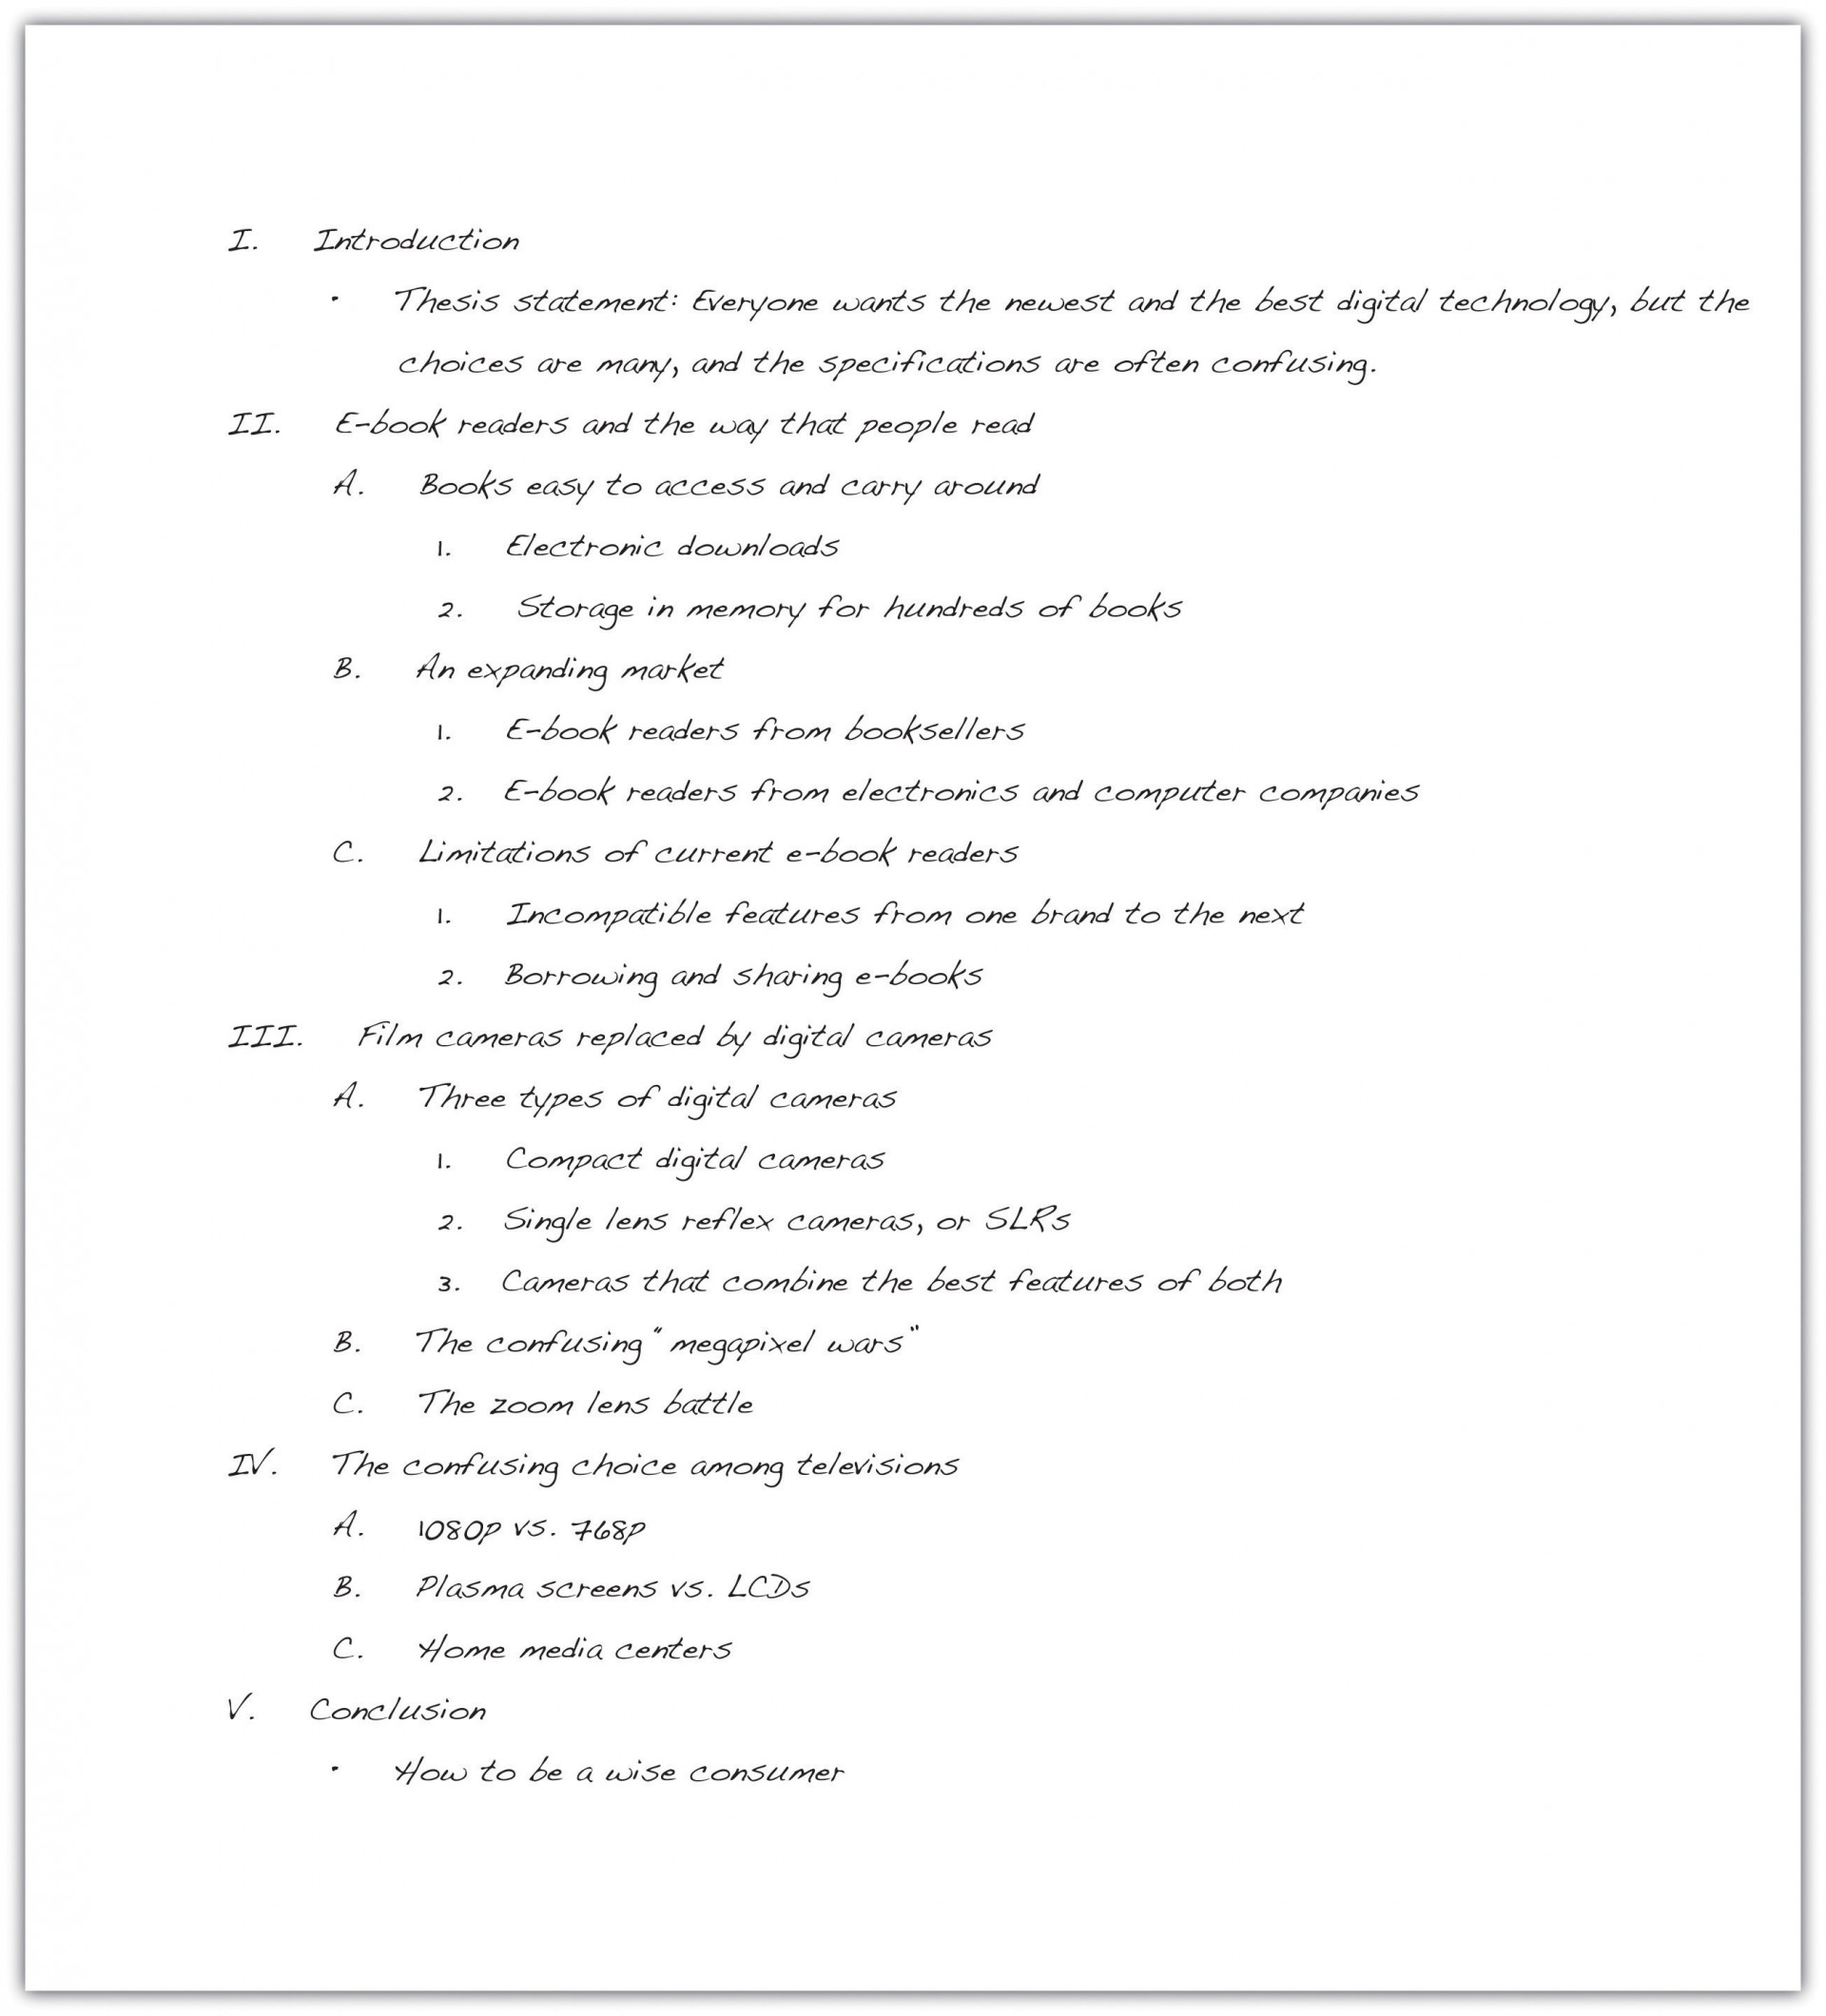 017 Essay Example Outline Marvelous For Writing Introduction Argumentative 1920